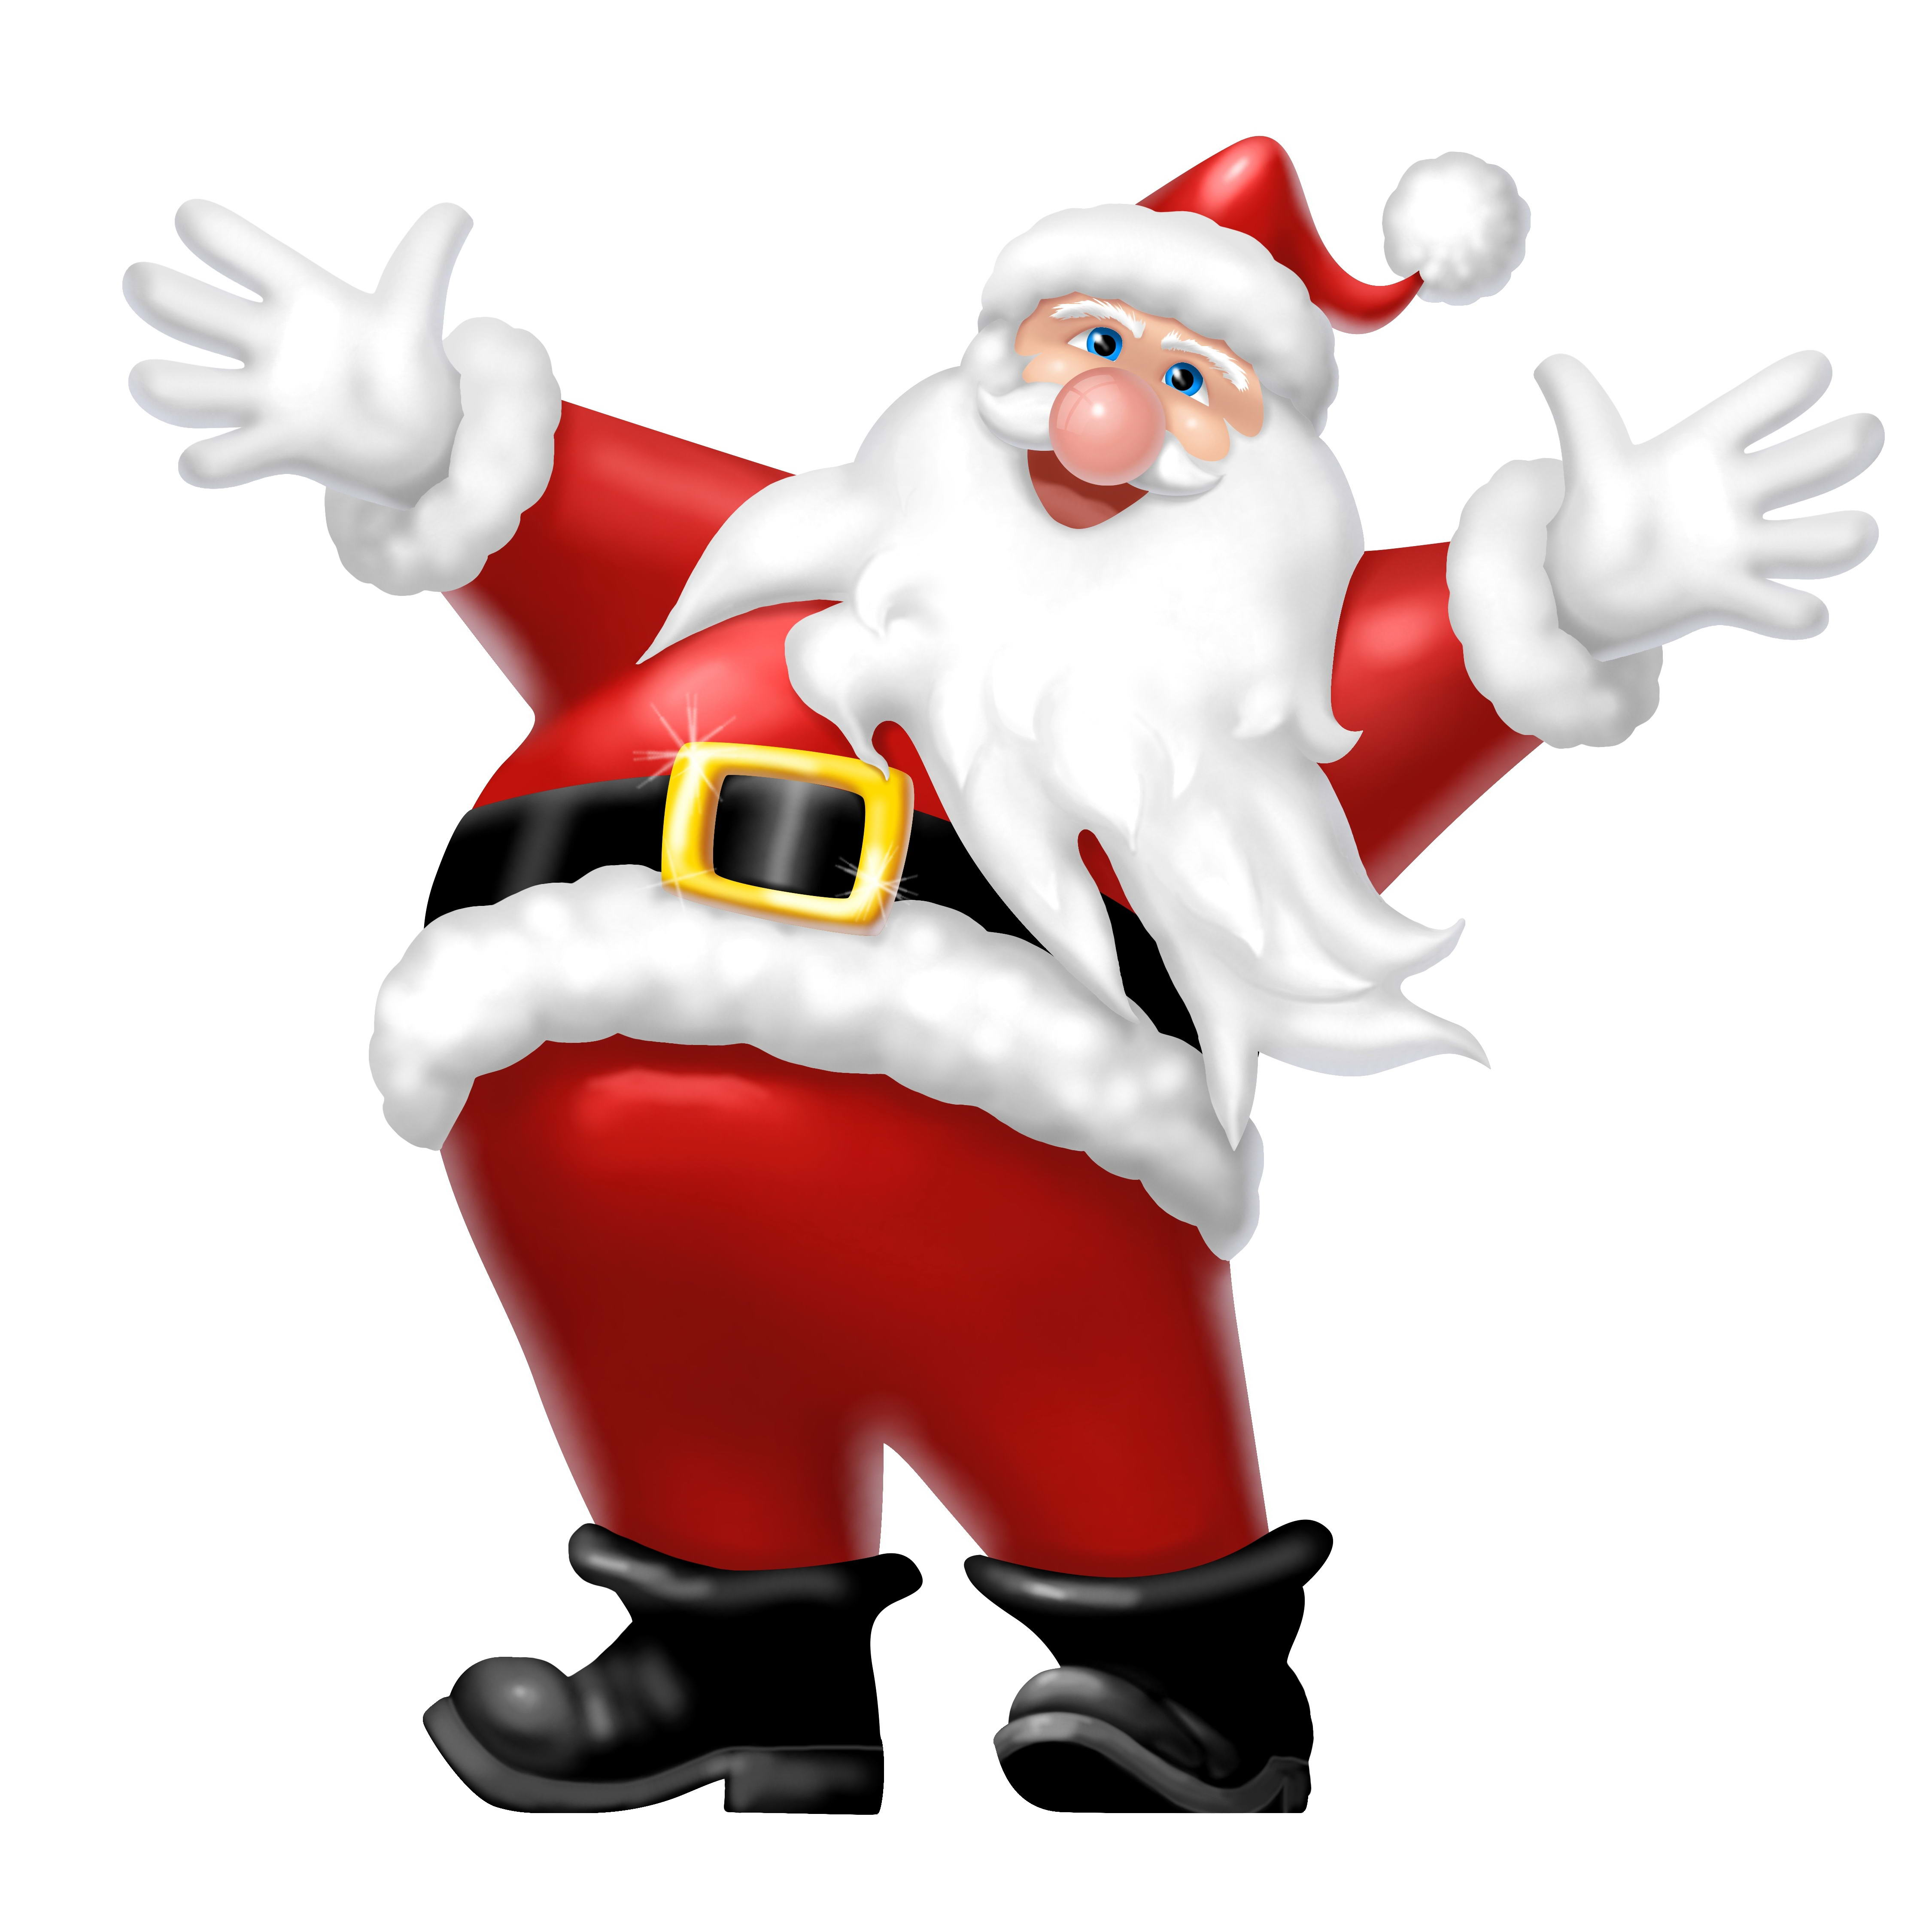 310 3100443 santa claus wallpapers free download 25 december christmas